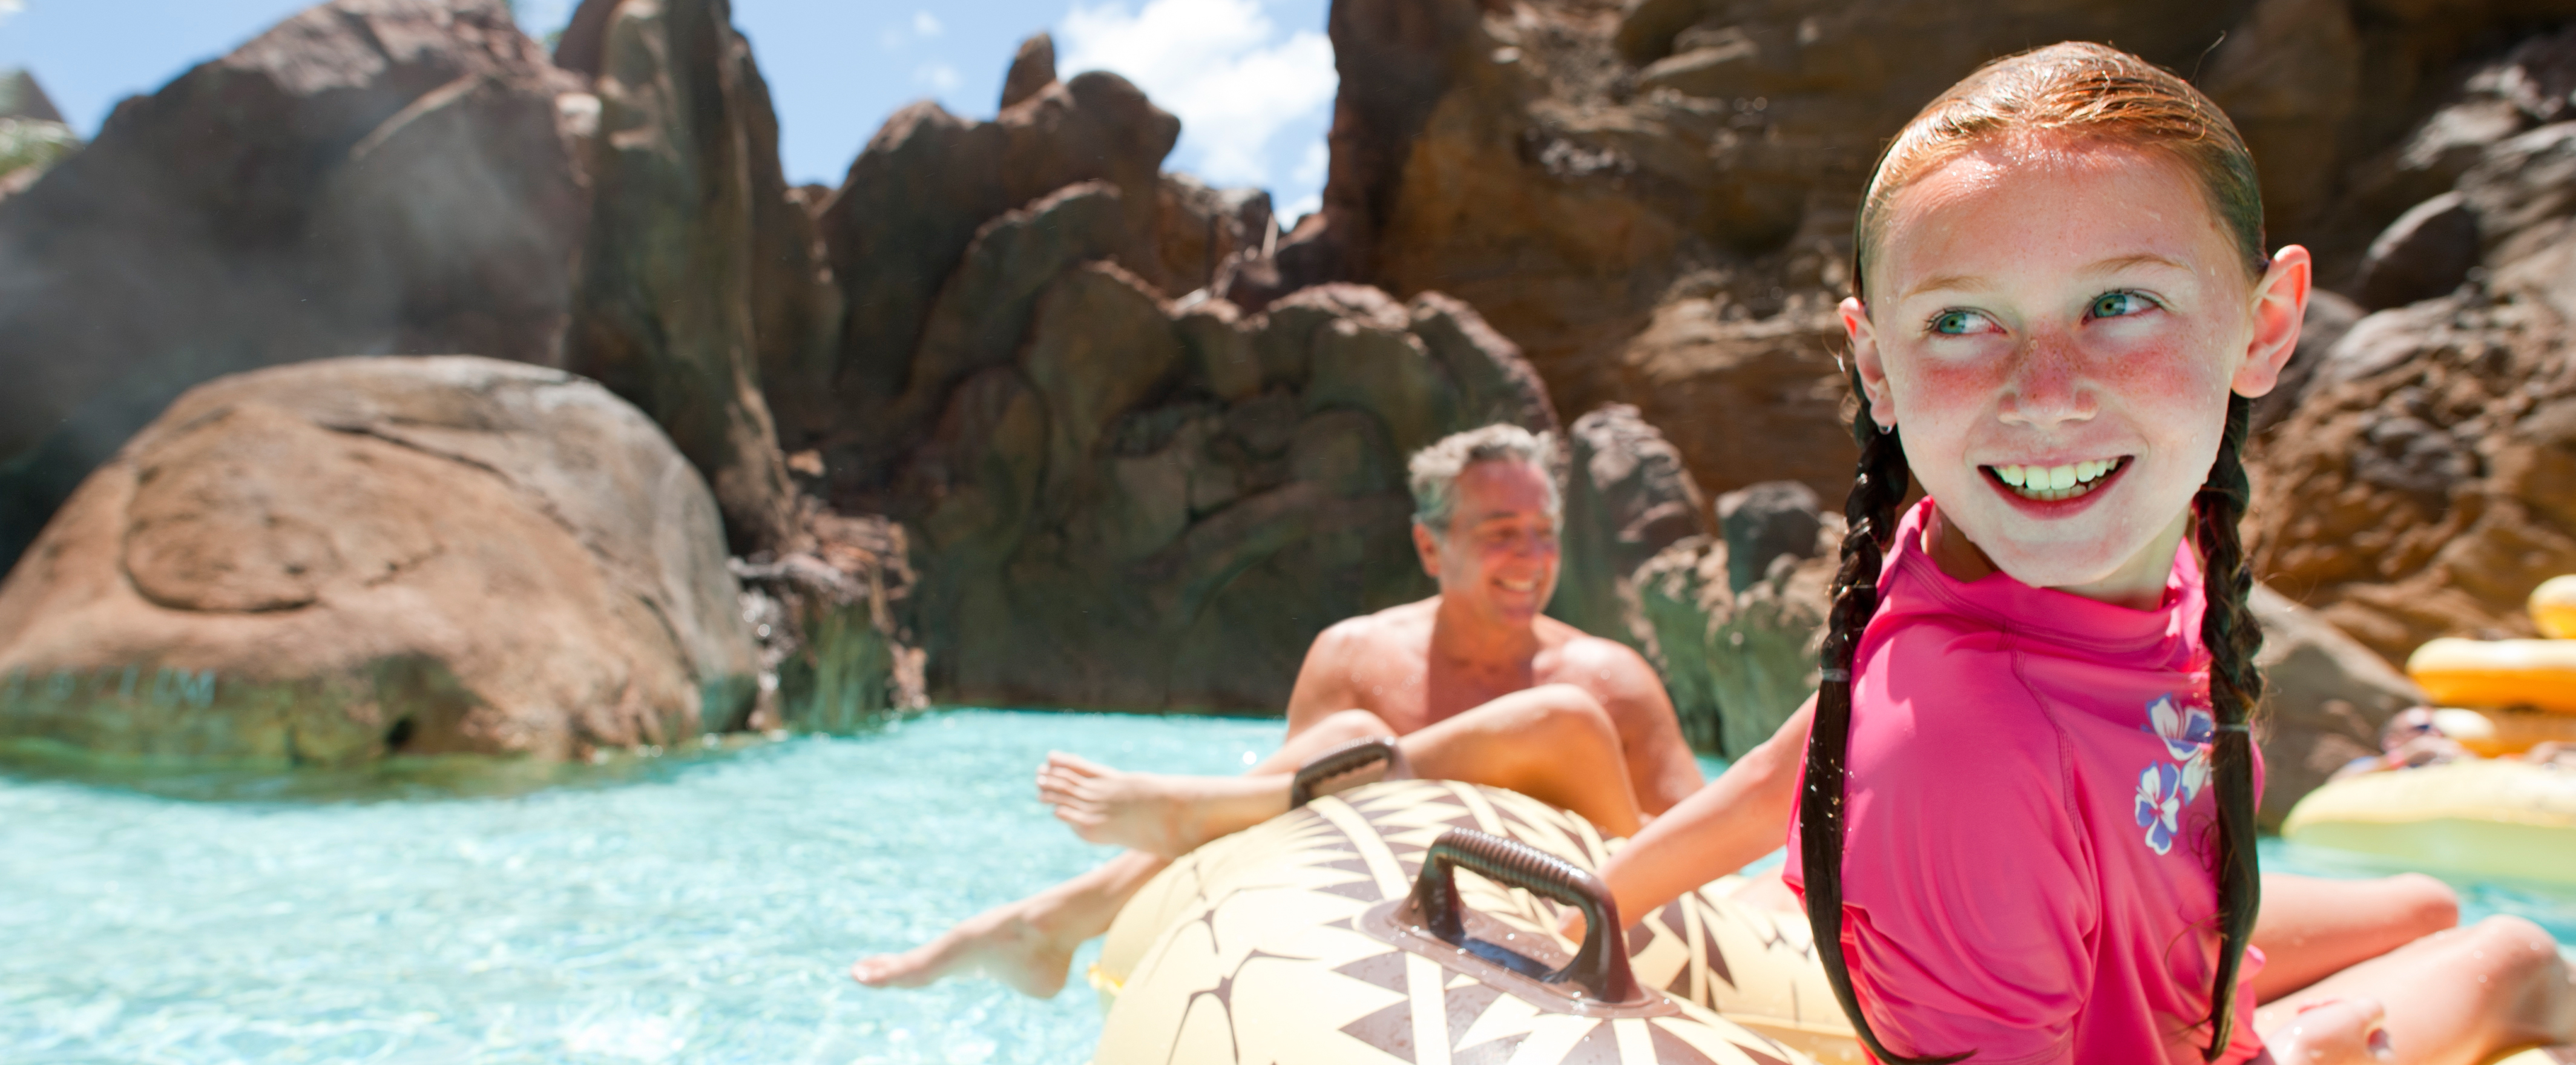 A father and daughter float on the lazy river